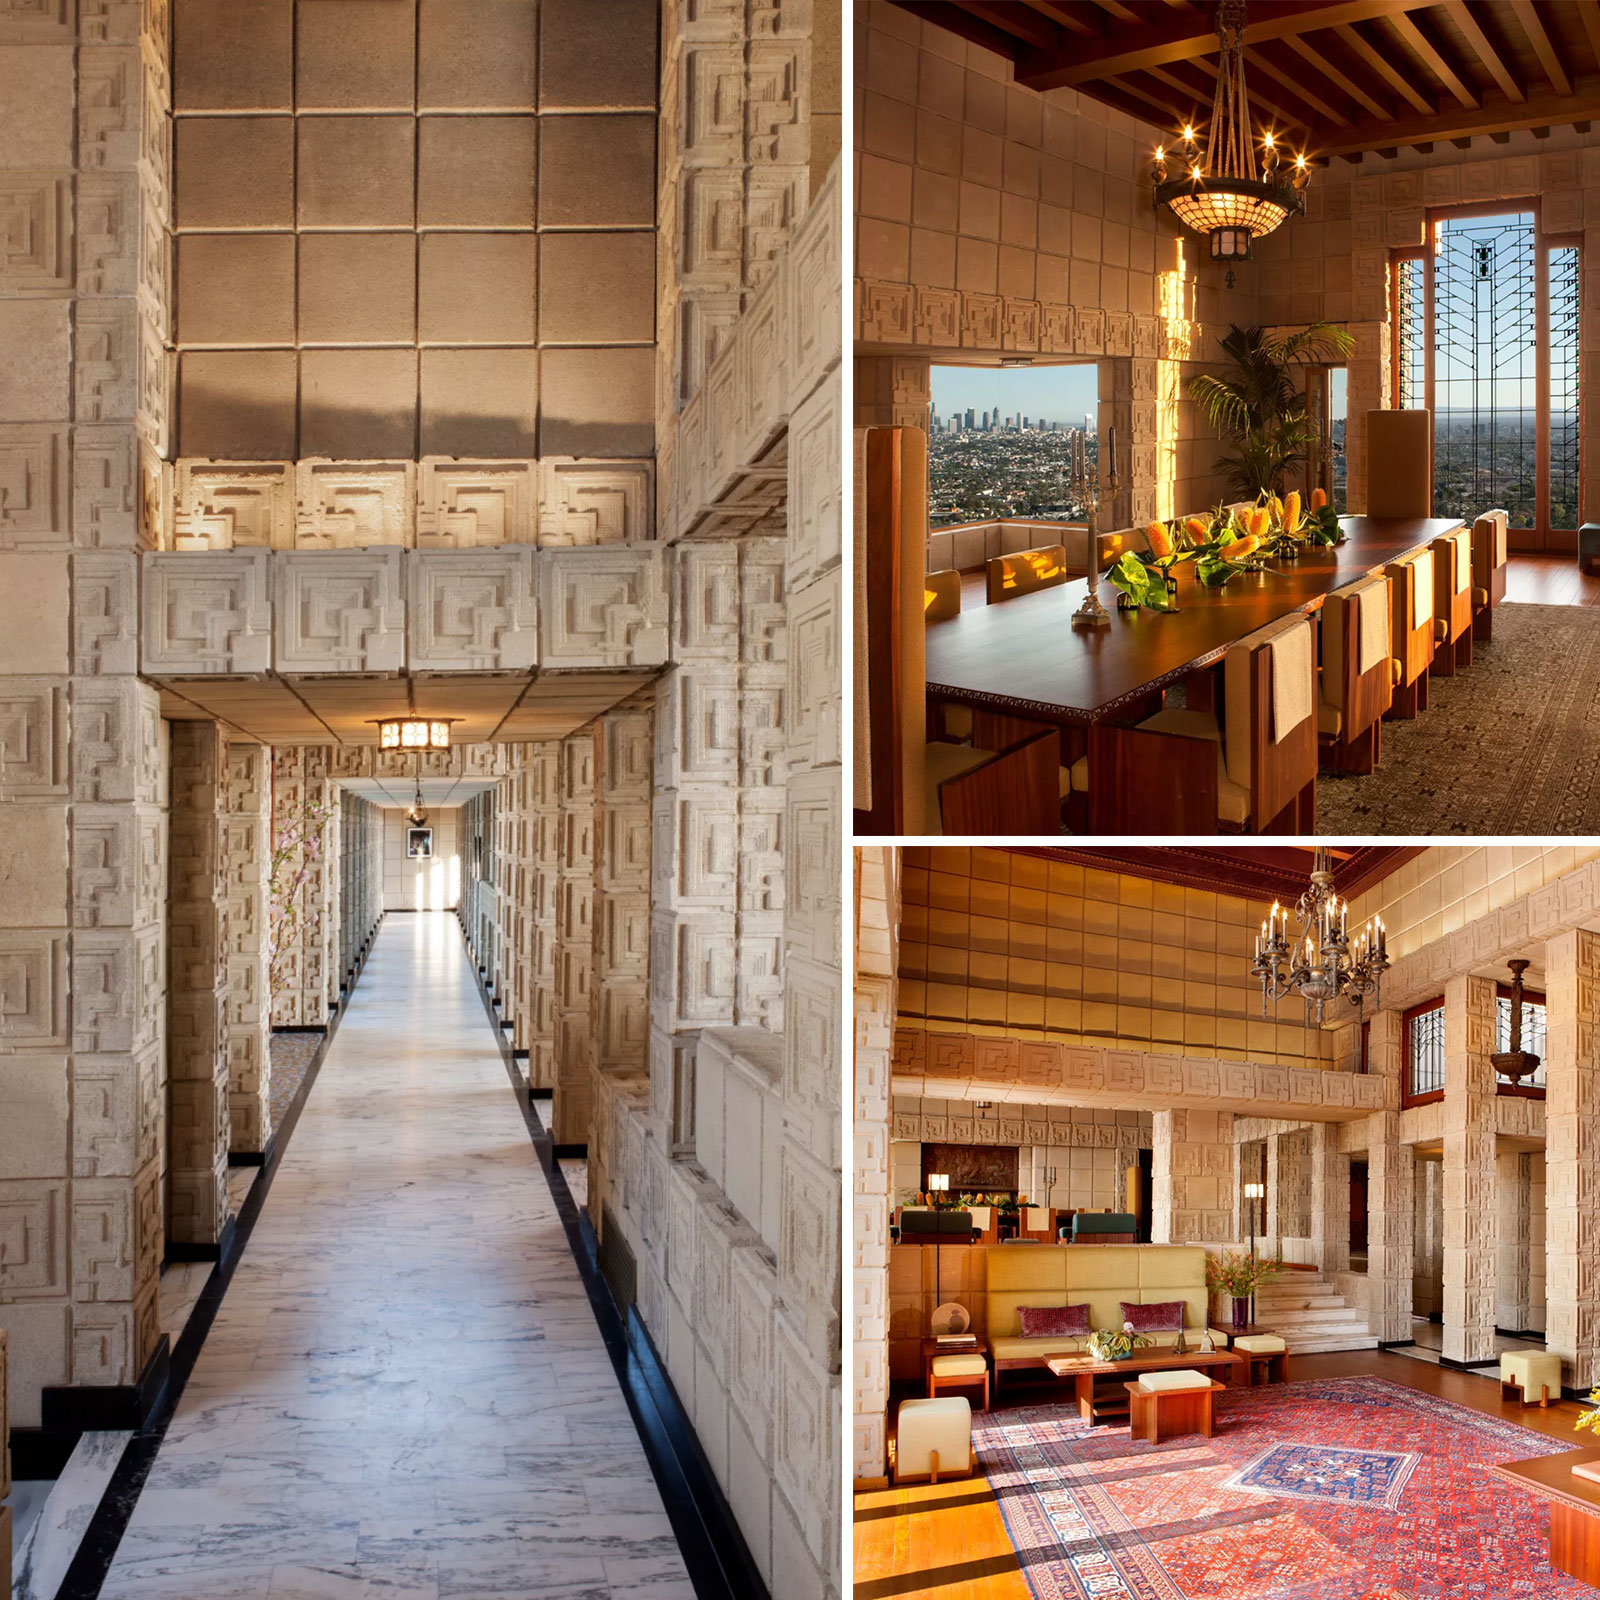 The Mayan-inspired residence is up for grabs after a major restoration.